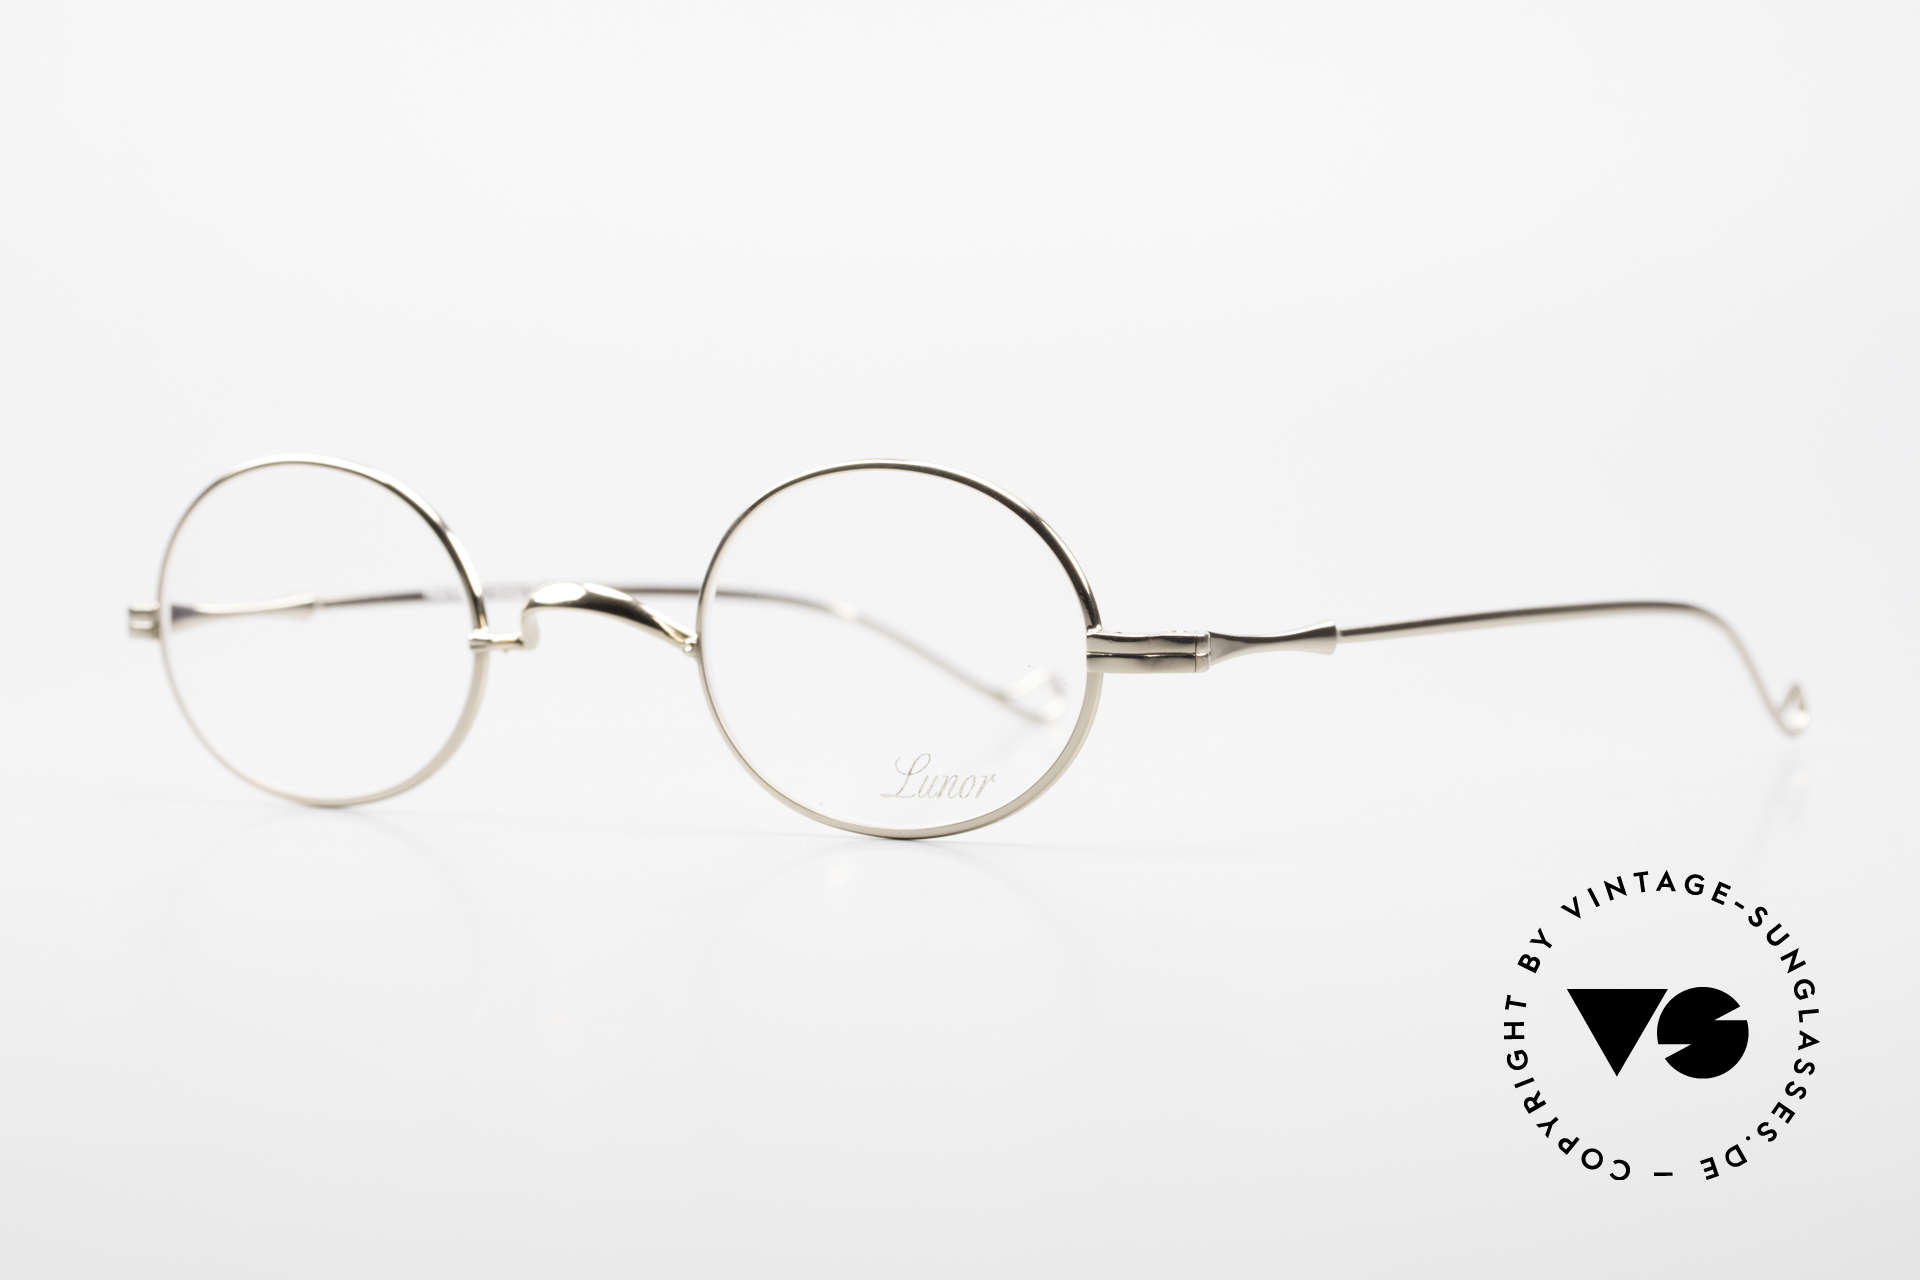 Lunor II 10 Oval Lunor Frame Gold Plated, rather a small model (in size 43/26) for ladies and gents, Made for Men and Women